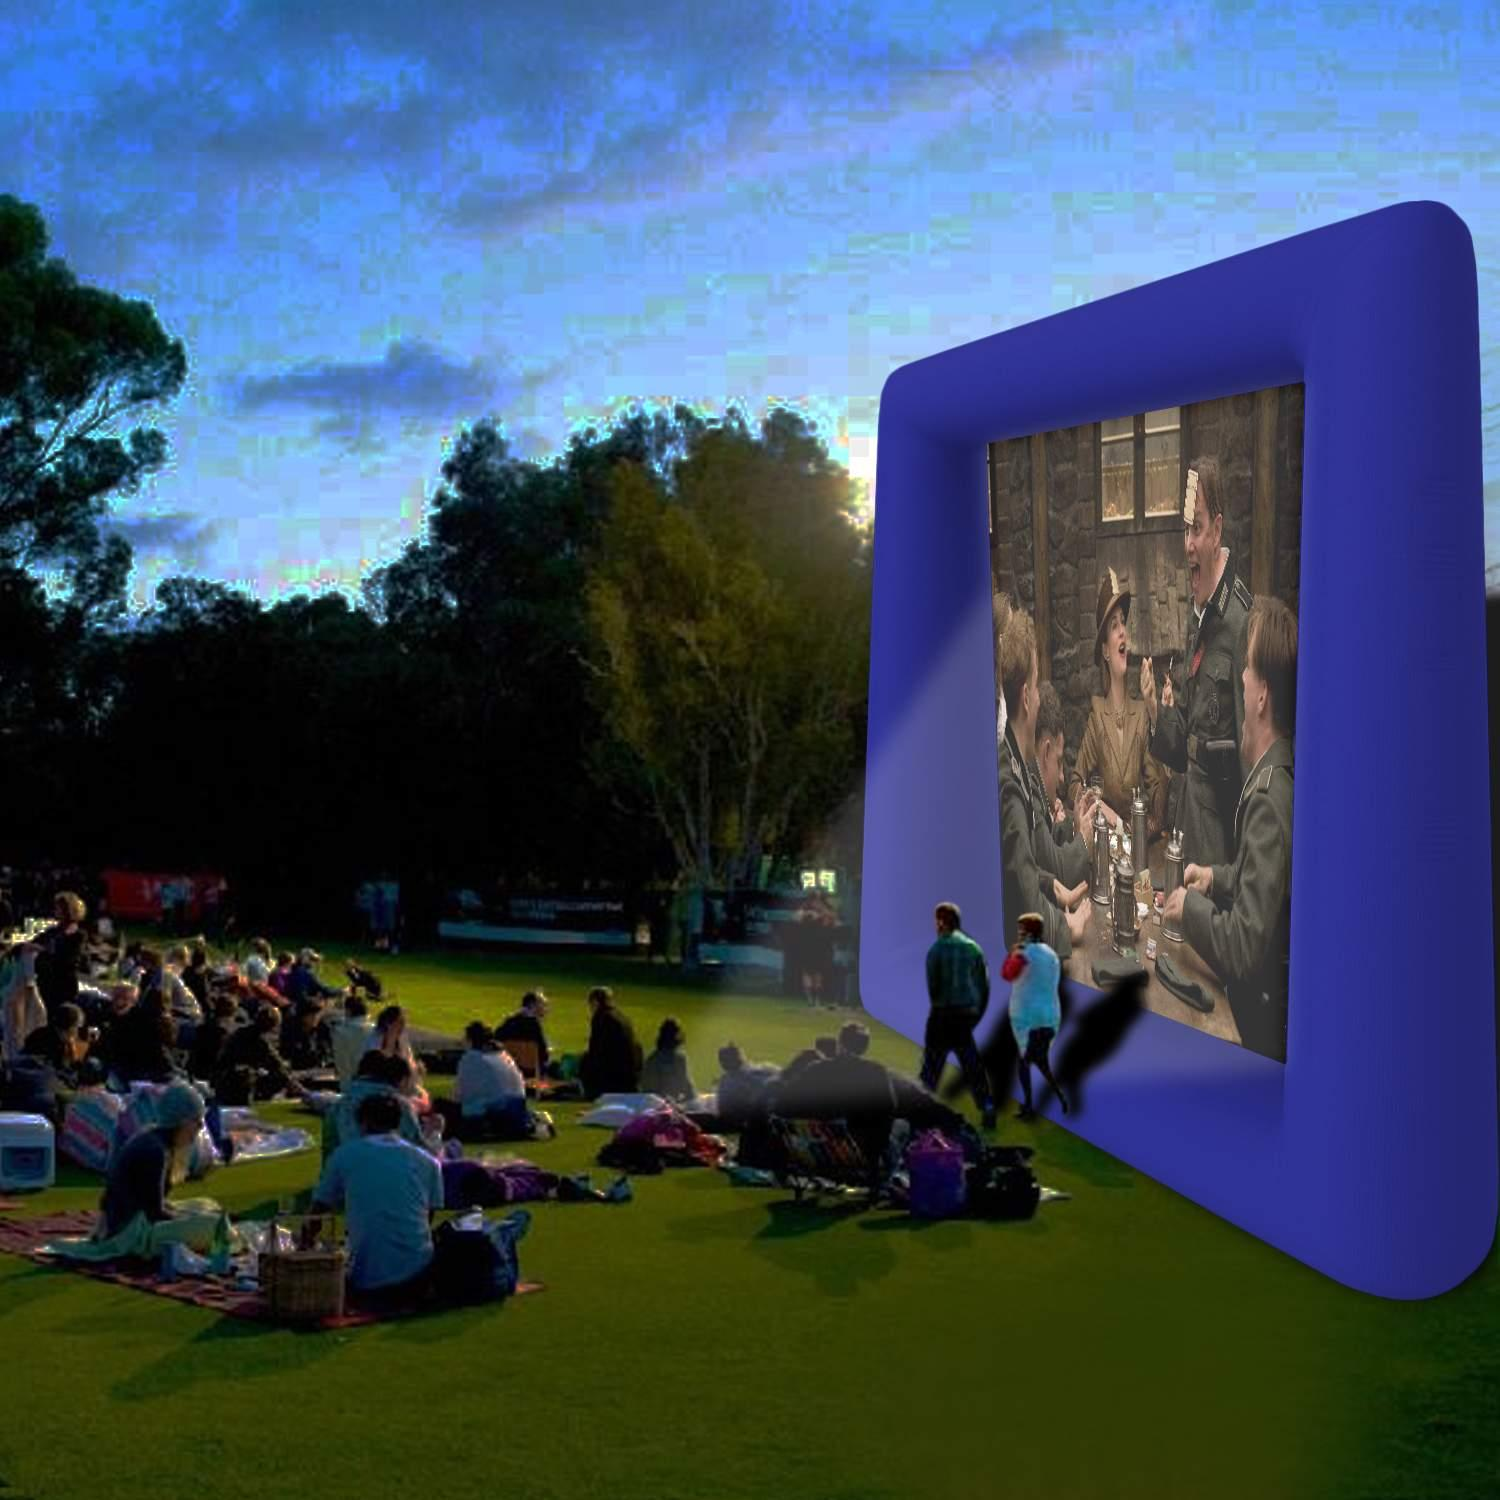 Clearance&Sale!!! Inflatable Mega Movie Screen Projection Screen Movie Cinema Inflatable Movie Screen for Outdoor Parties is Guaranteed to Thrill and Excite (Fan pump not included)